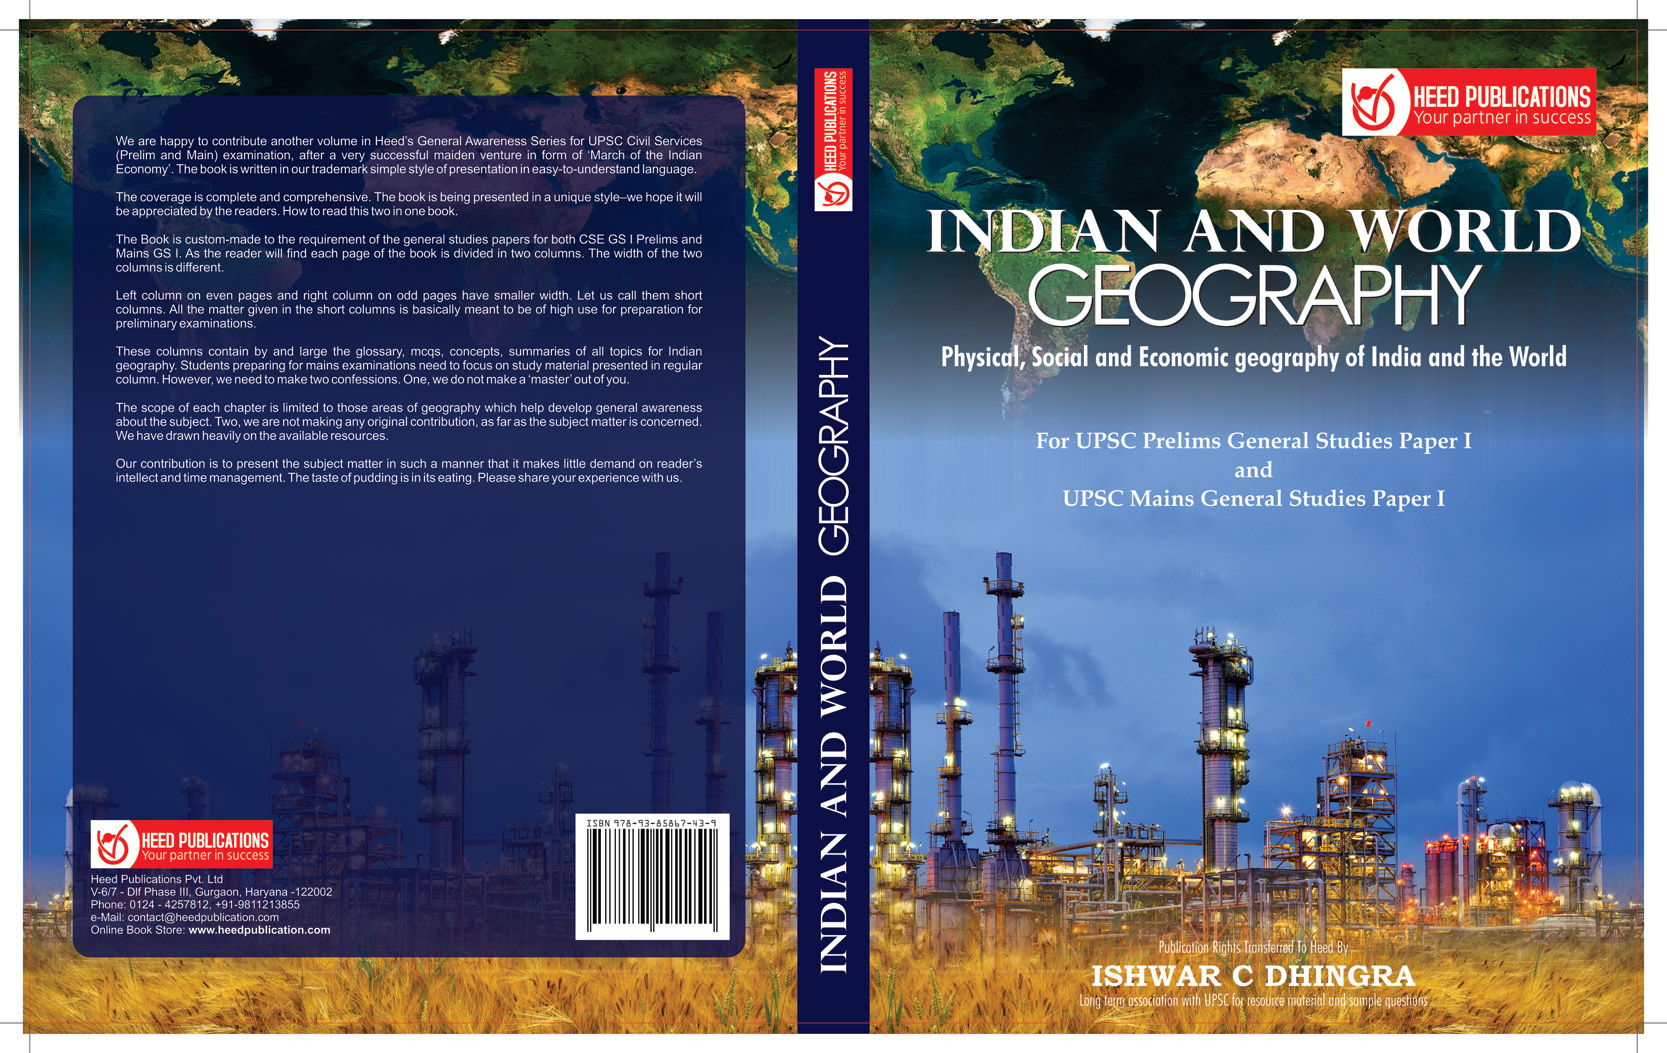 indian-and-world-geography-book-cover-26th-may-2016-1